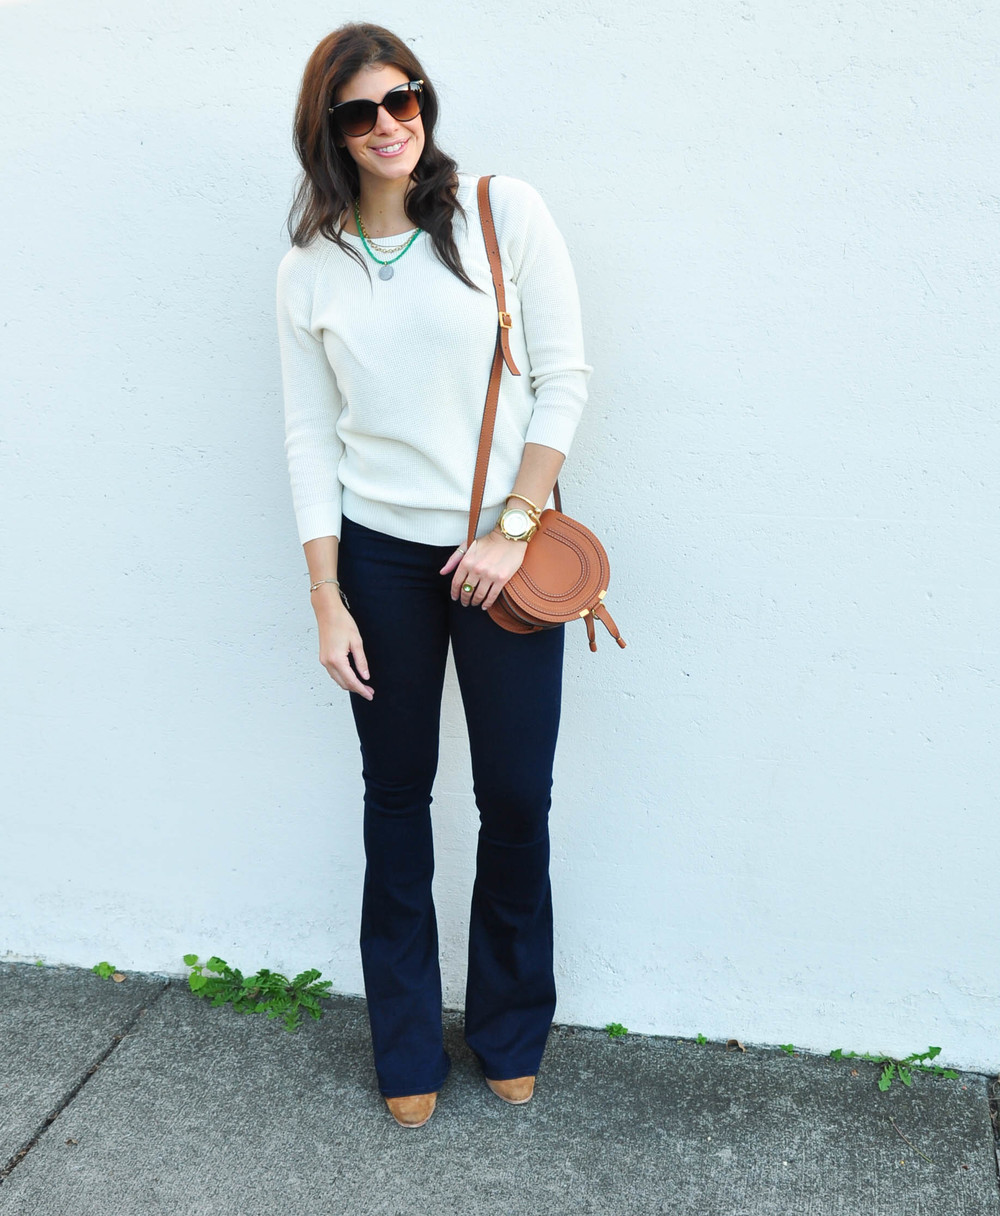 LaurenSchwaiger-Life-Style-Blog-Fall-Fashion-Sweater-Casual.jpg